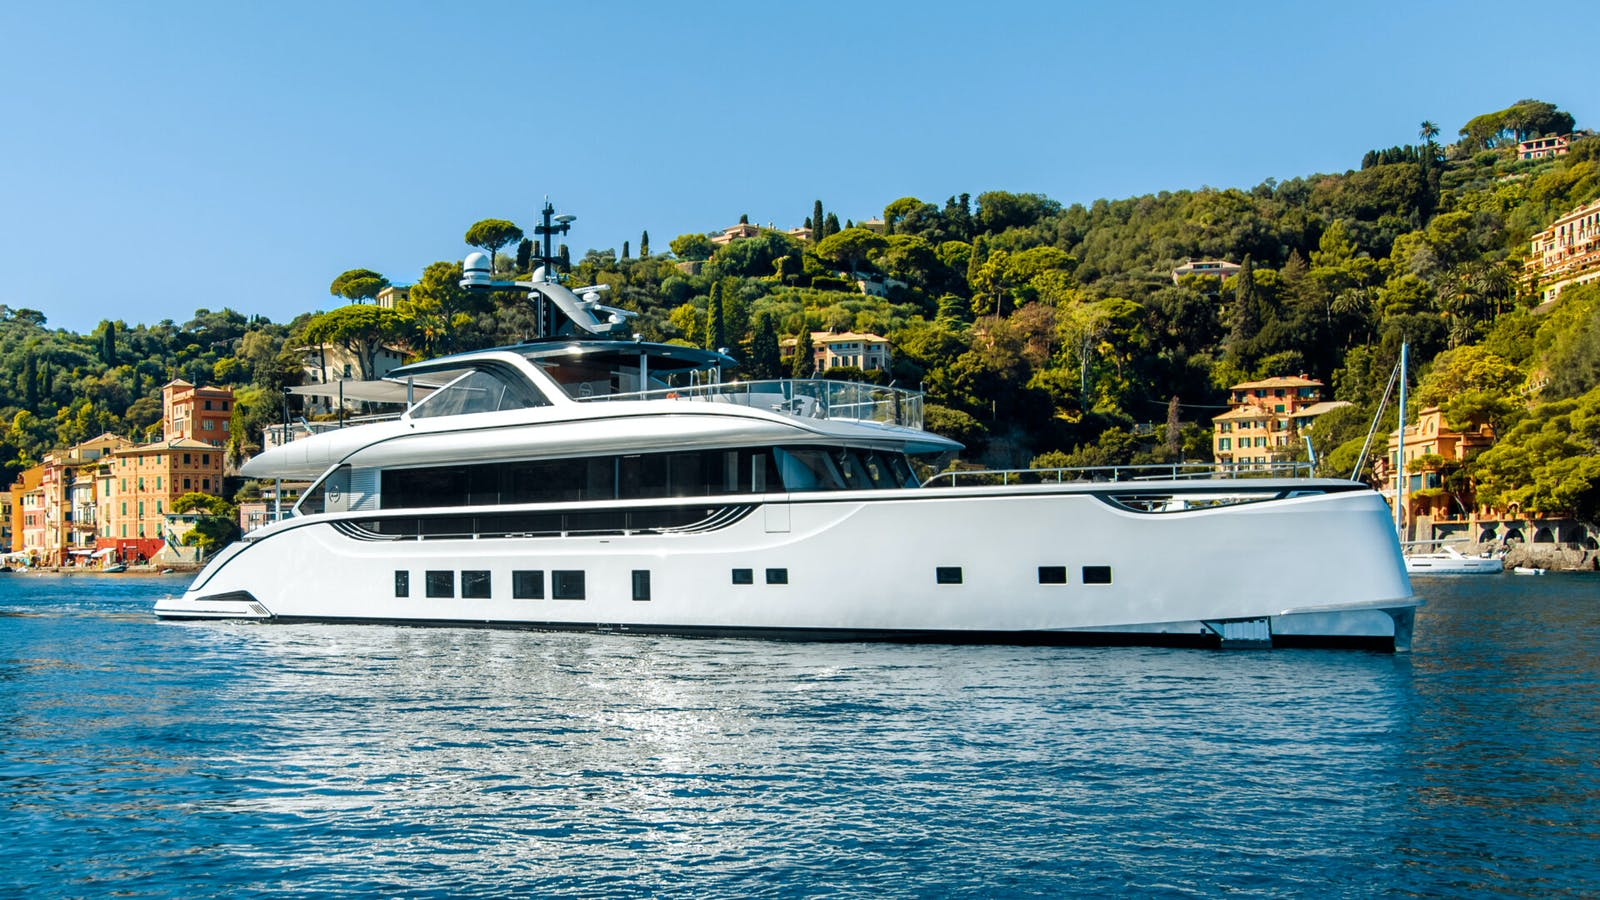 owner selling luxury superyacht at anchor in the Med